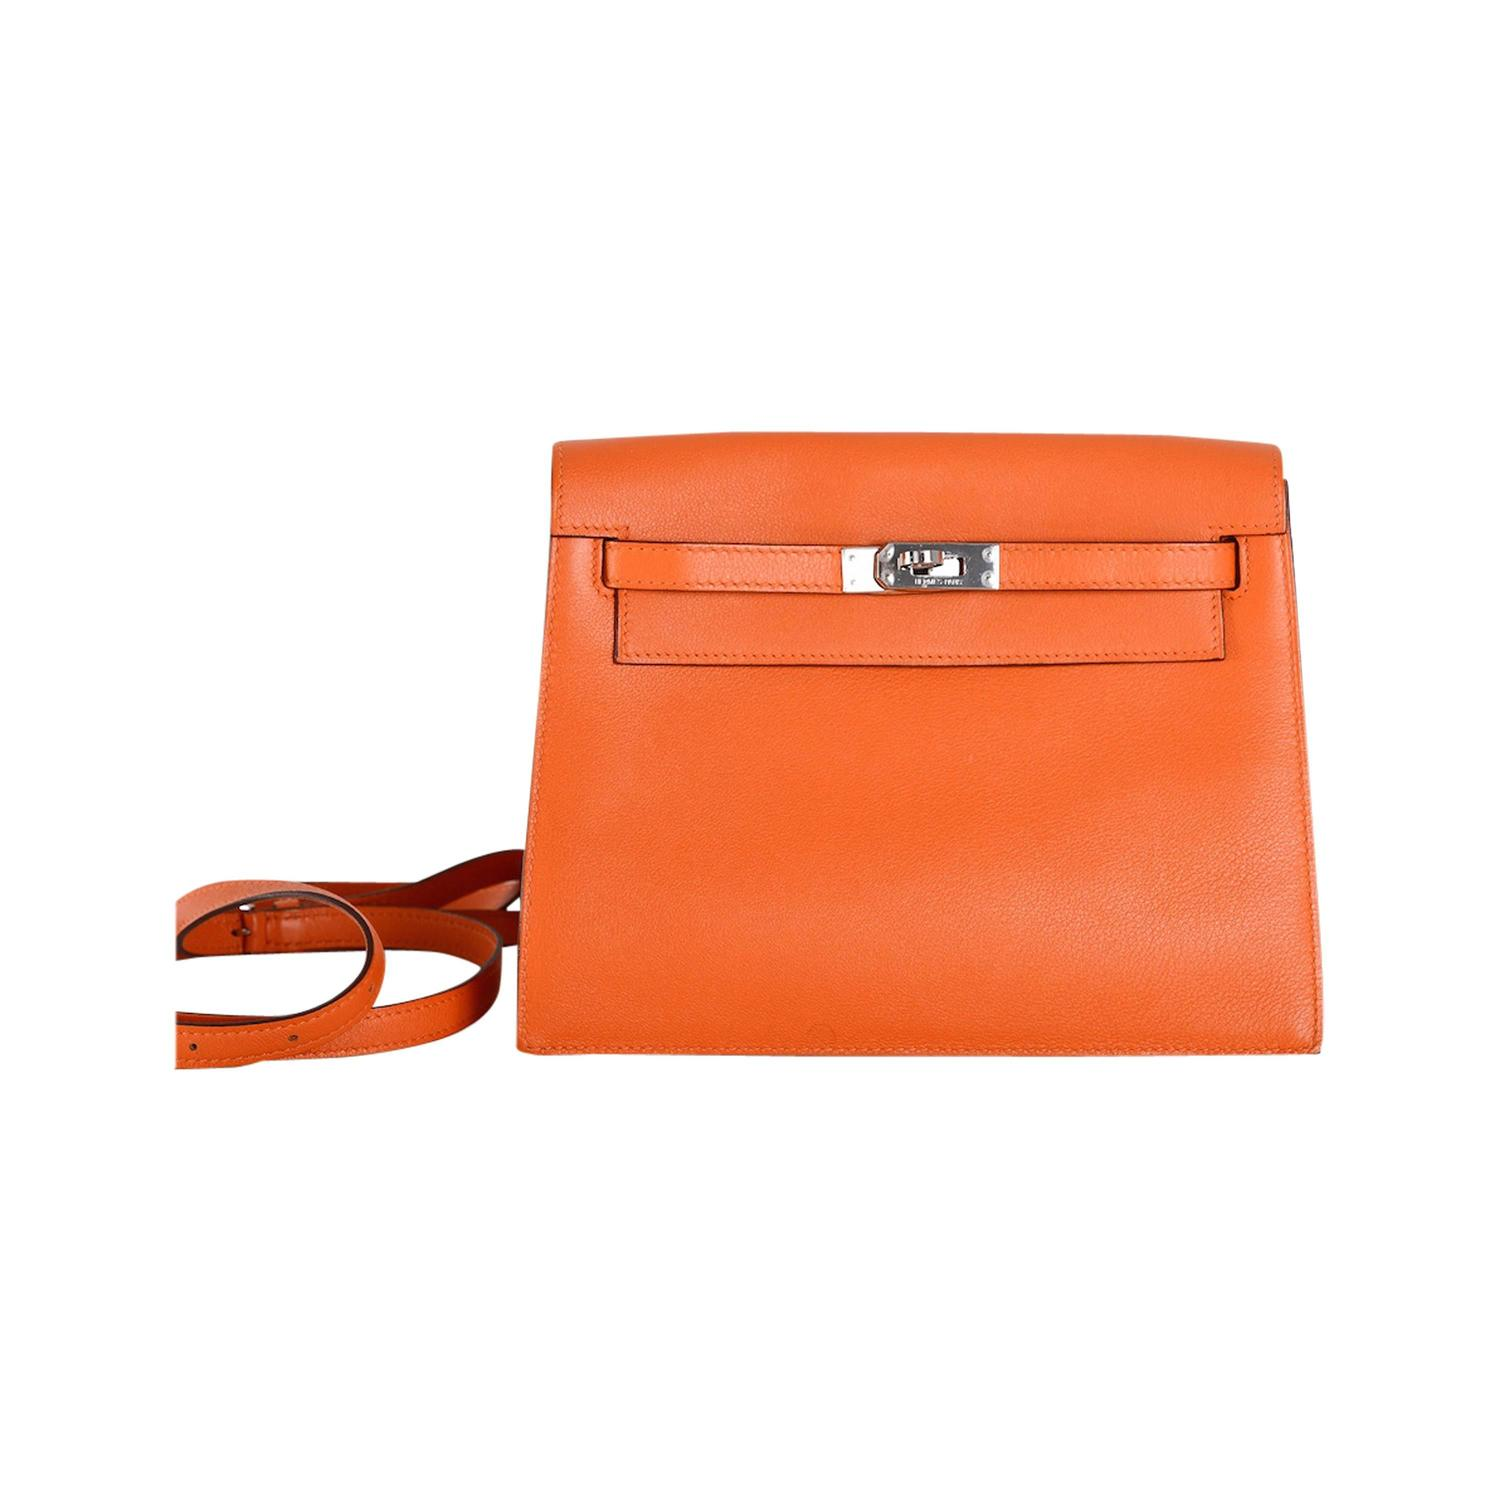 Hermes Kelly Danse Bag ORANGE SWIFT PALLADIUM JaneFinds For Sale ...